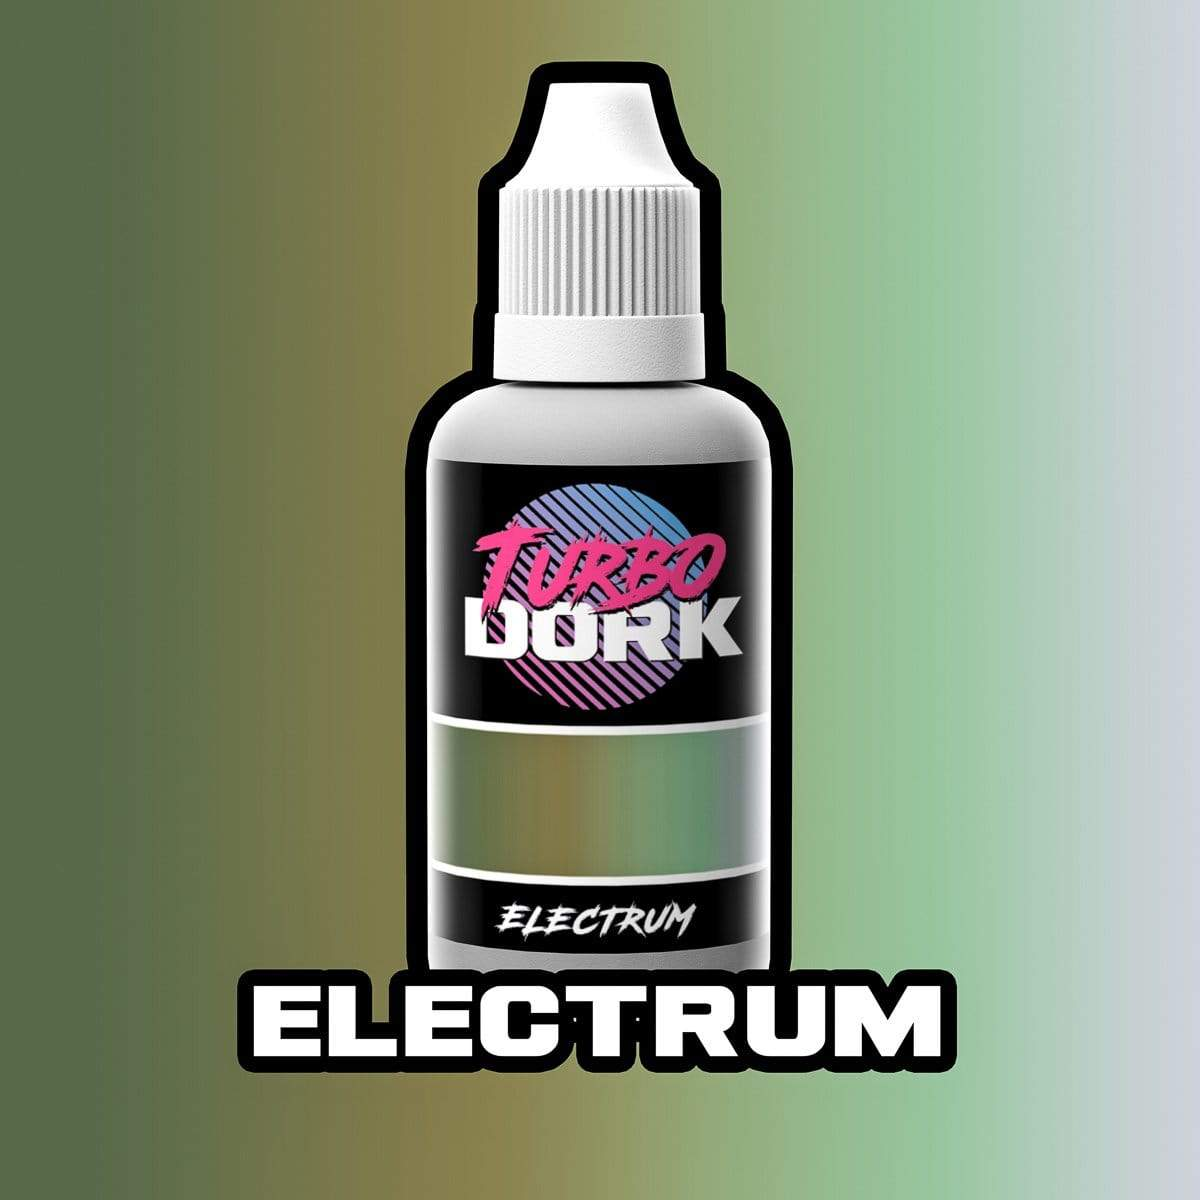 Turbo Dork Colorshift 20ml Bottle Electrum Colorshift Acrylic Paint